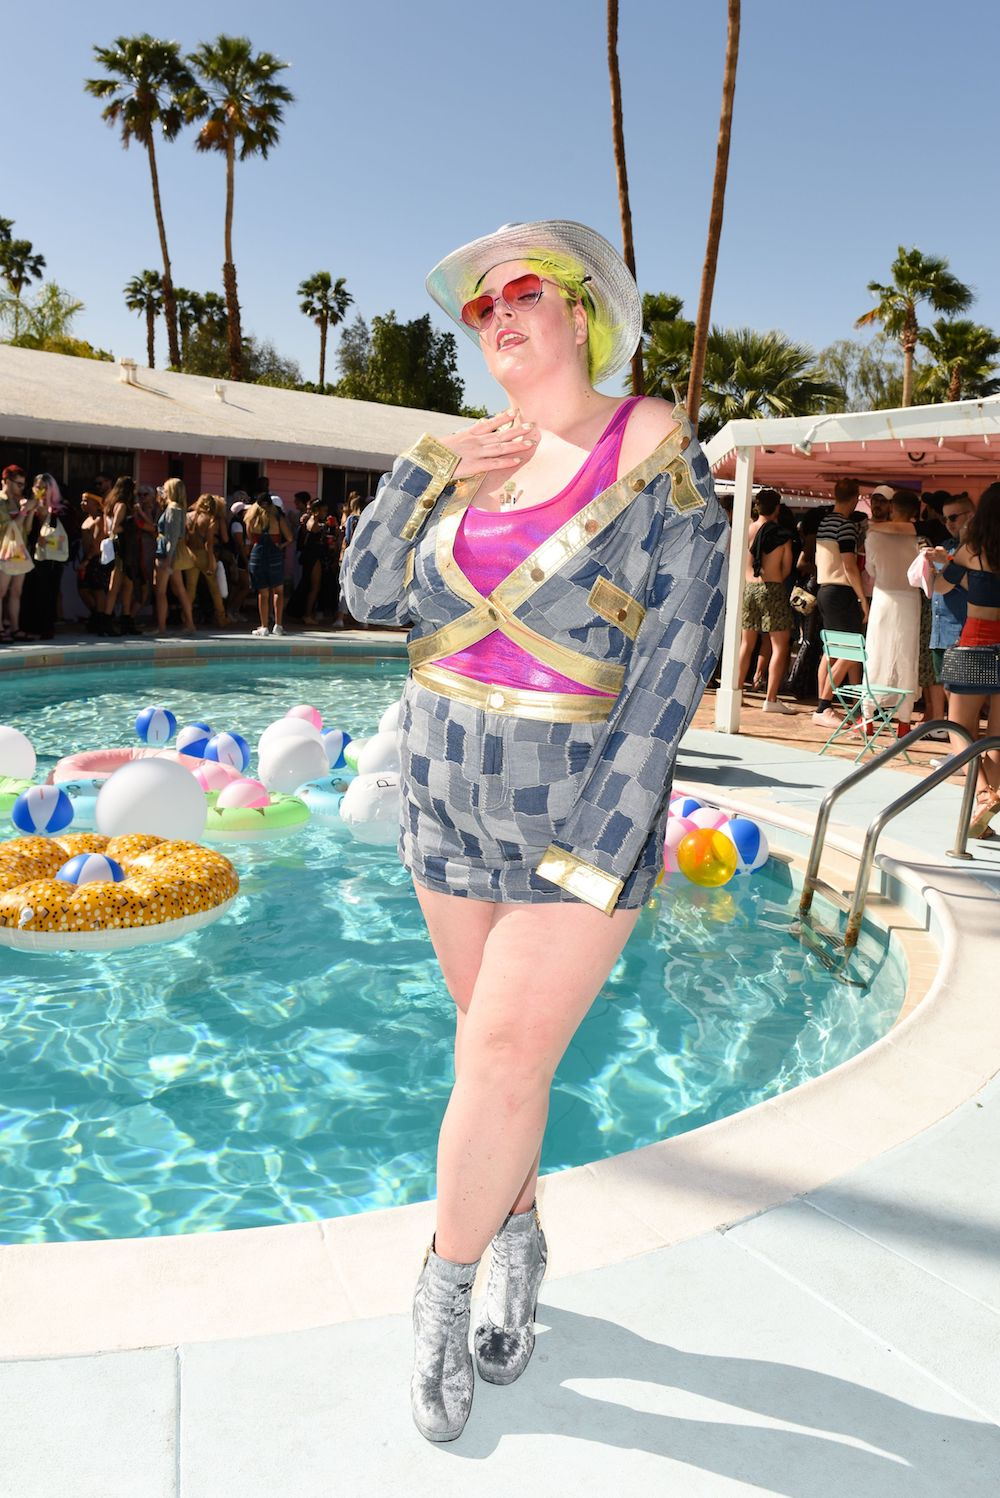 Patchwork denim pops up at pool parties in 2017.